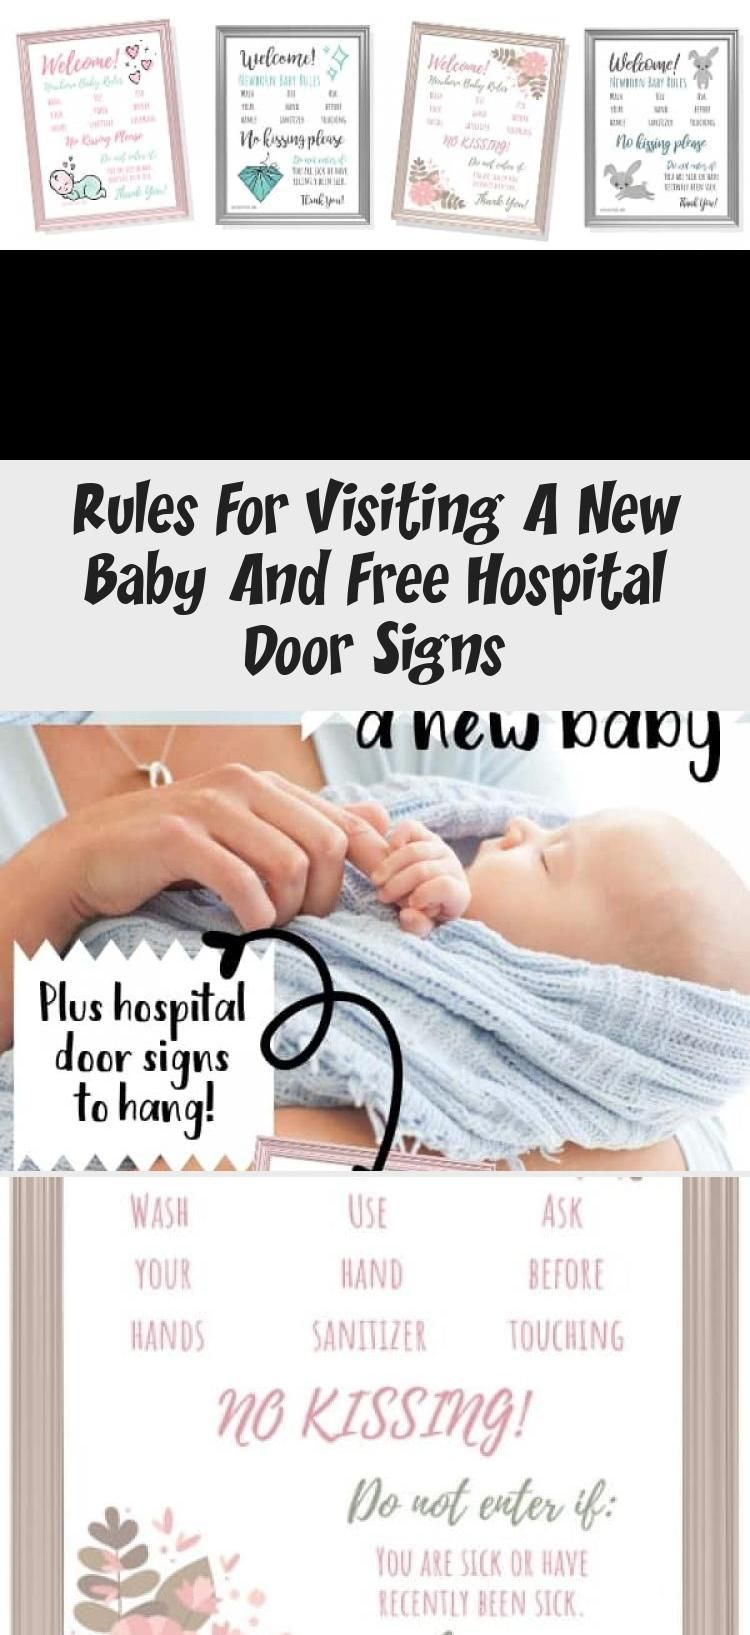 Rules For Visiting A New Baby And Free Hospital Door Signs In 2020